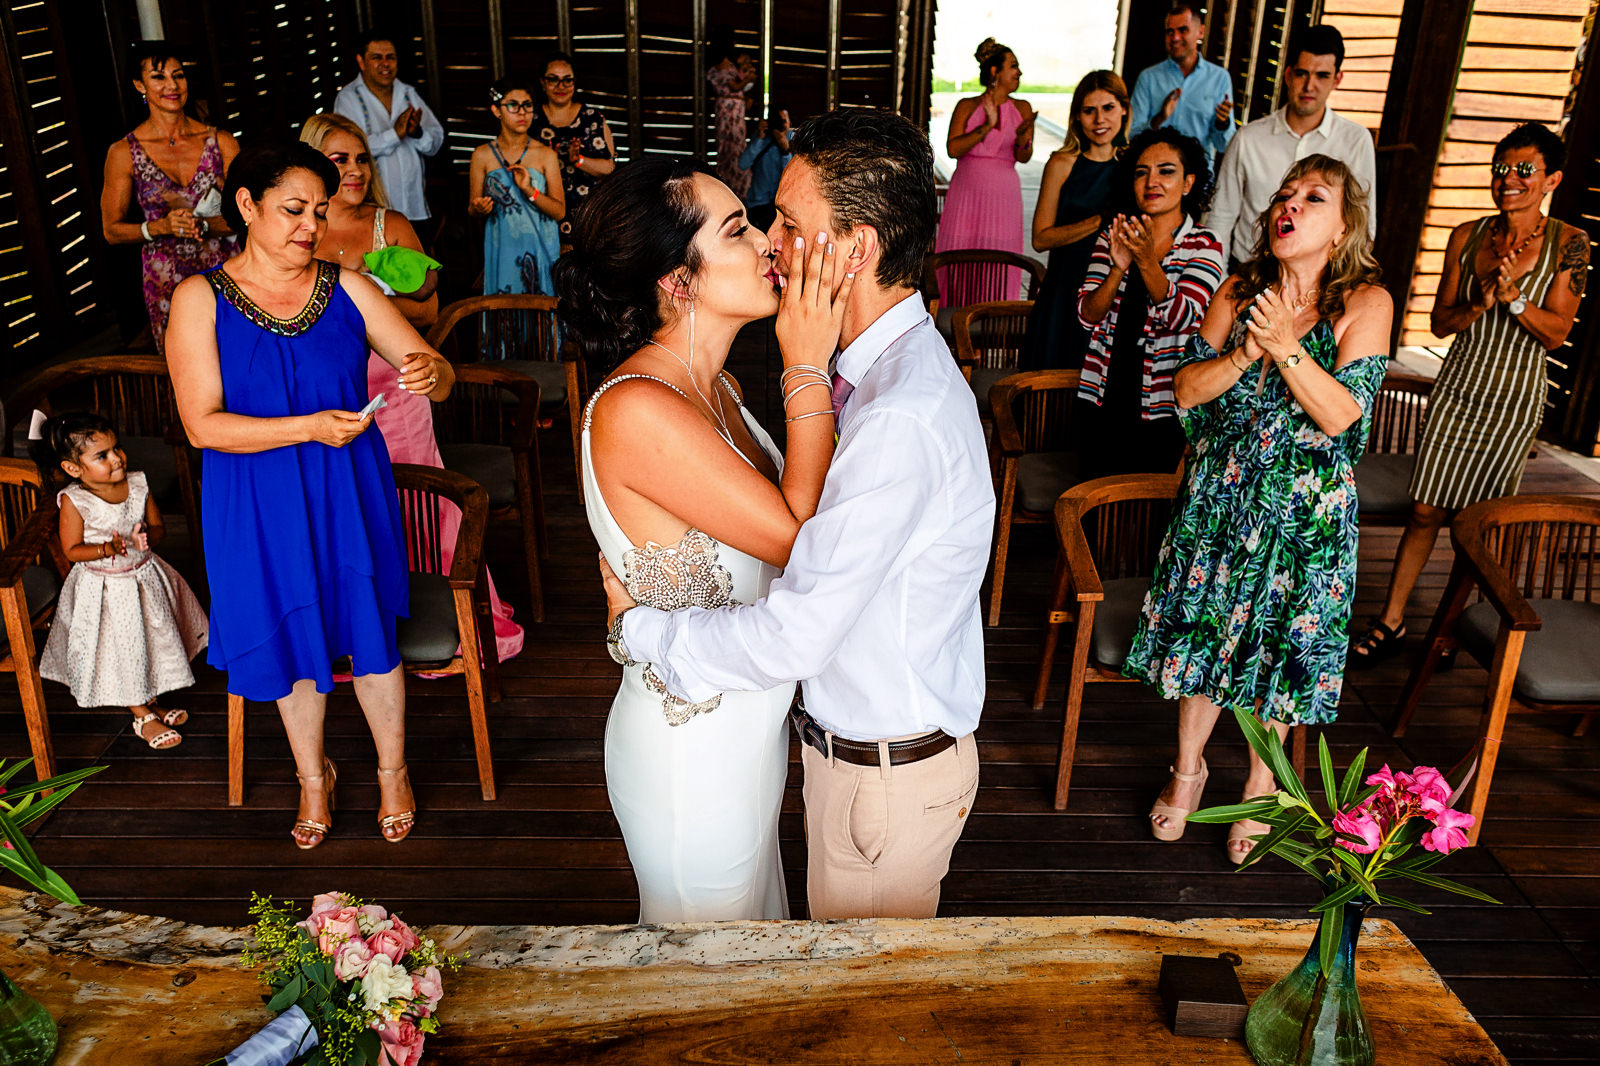 Bride and groom first kiss at the end of their wedding ceremony at La Patrona beach club in San Pancho, Nayarit.